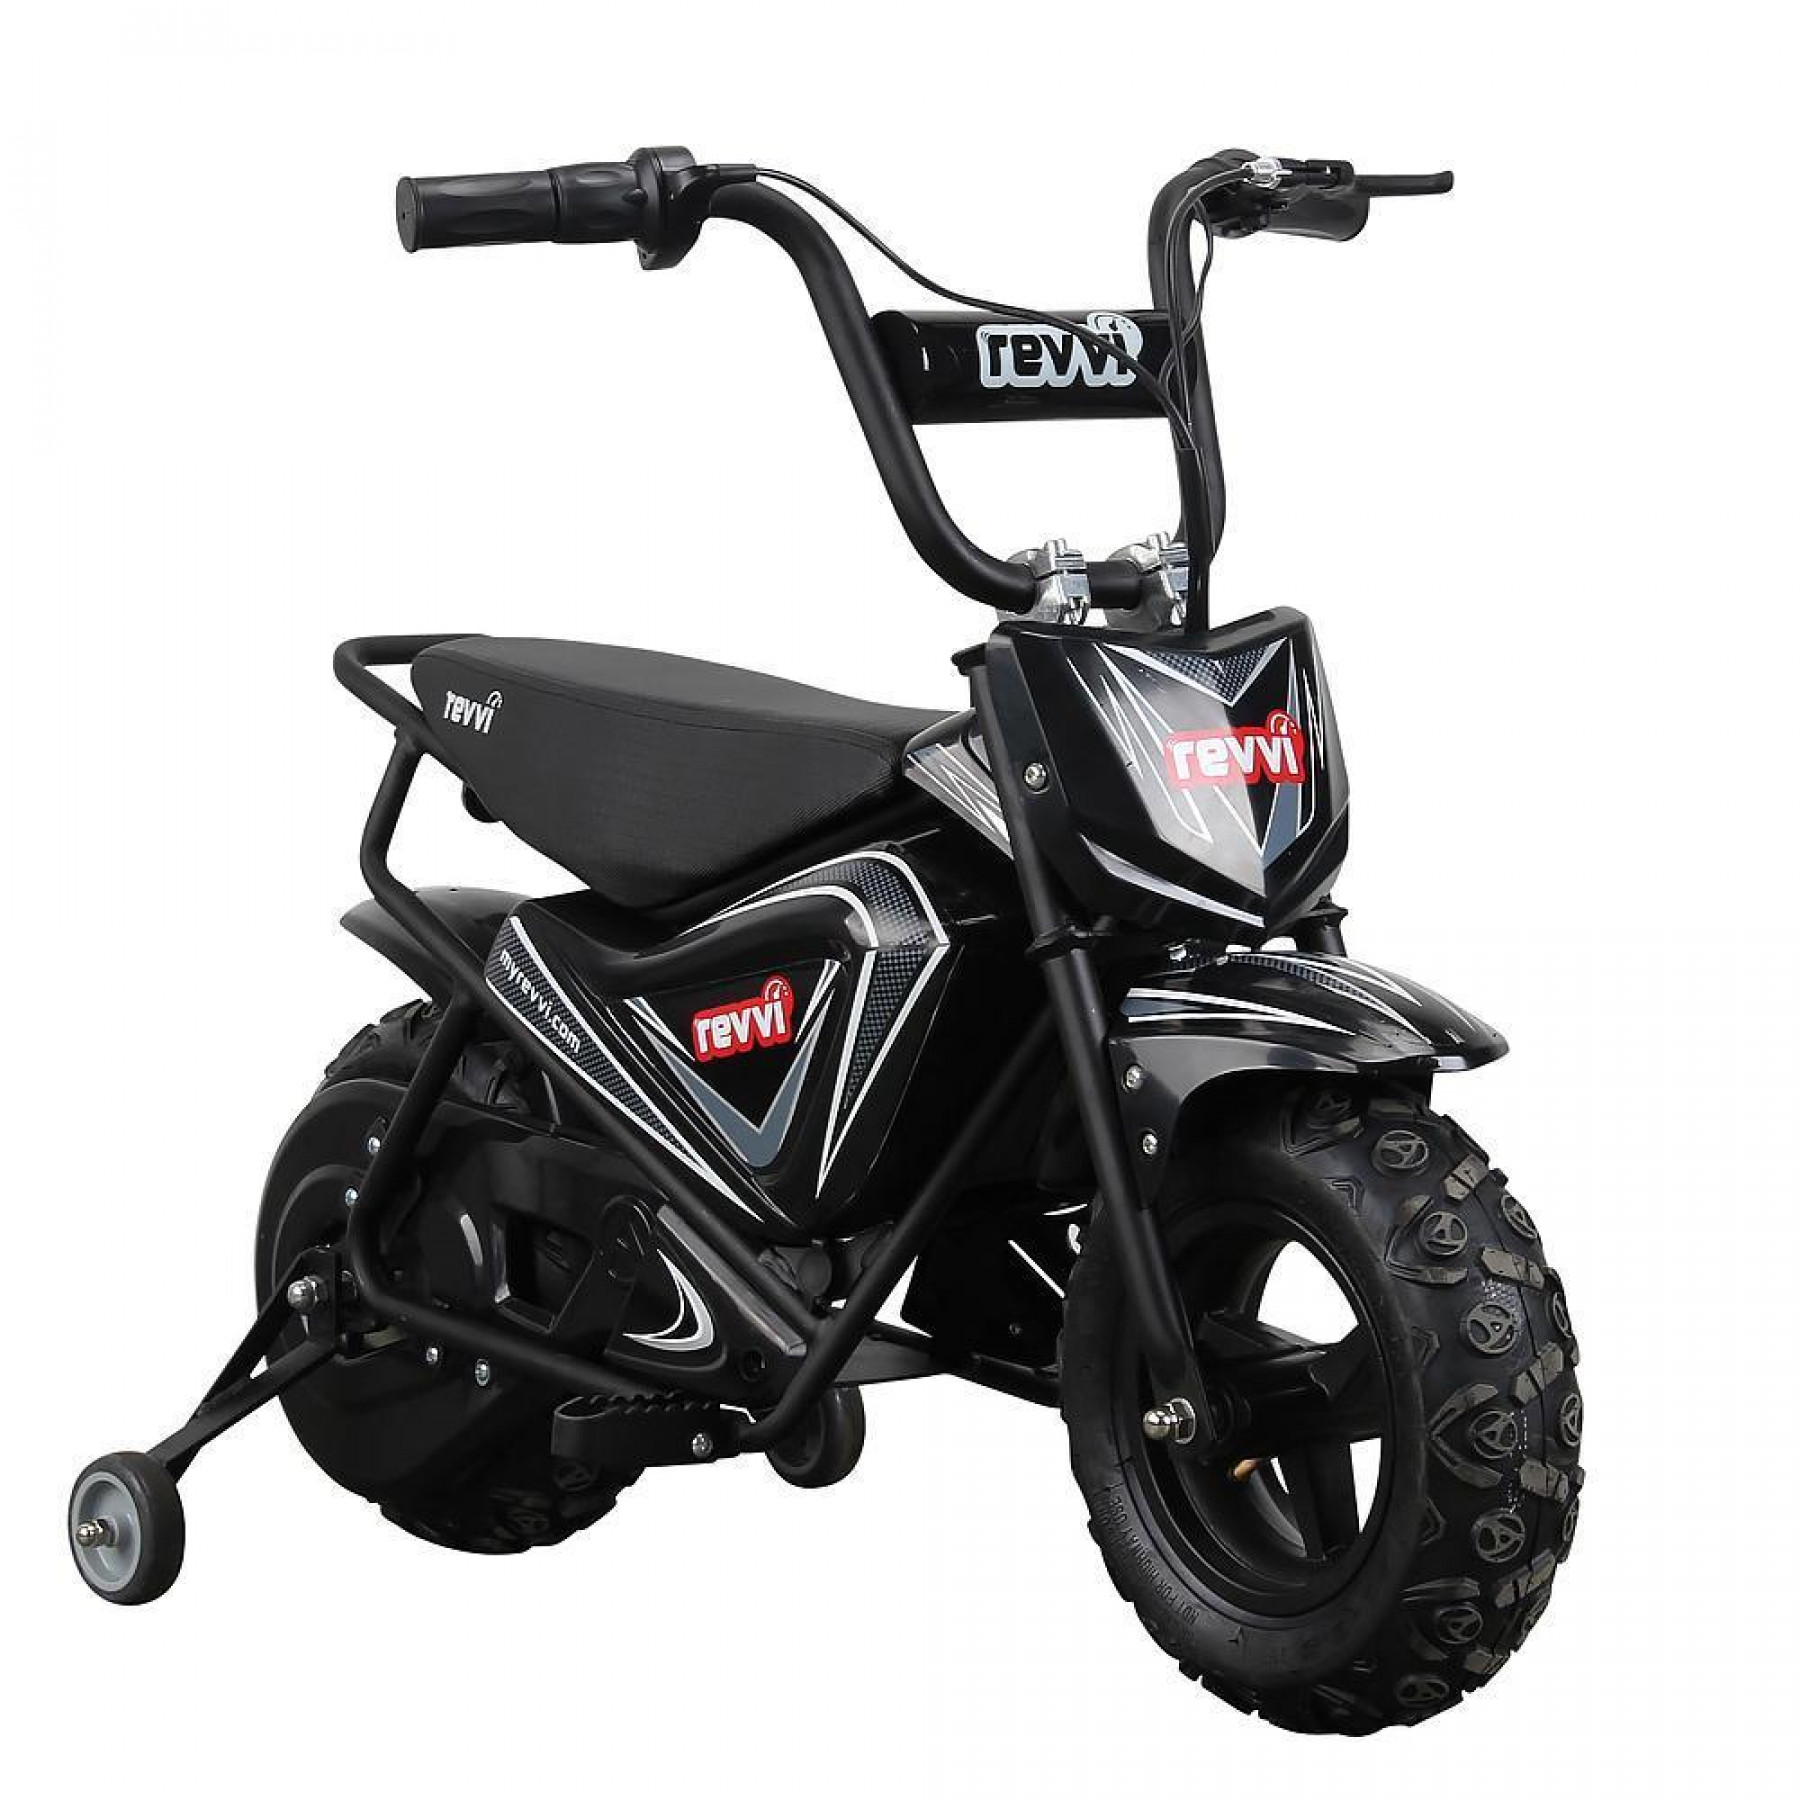 XTREME REVVI 250w FUN BIKE BLACK